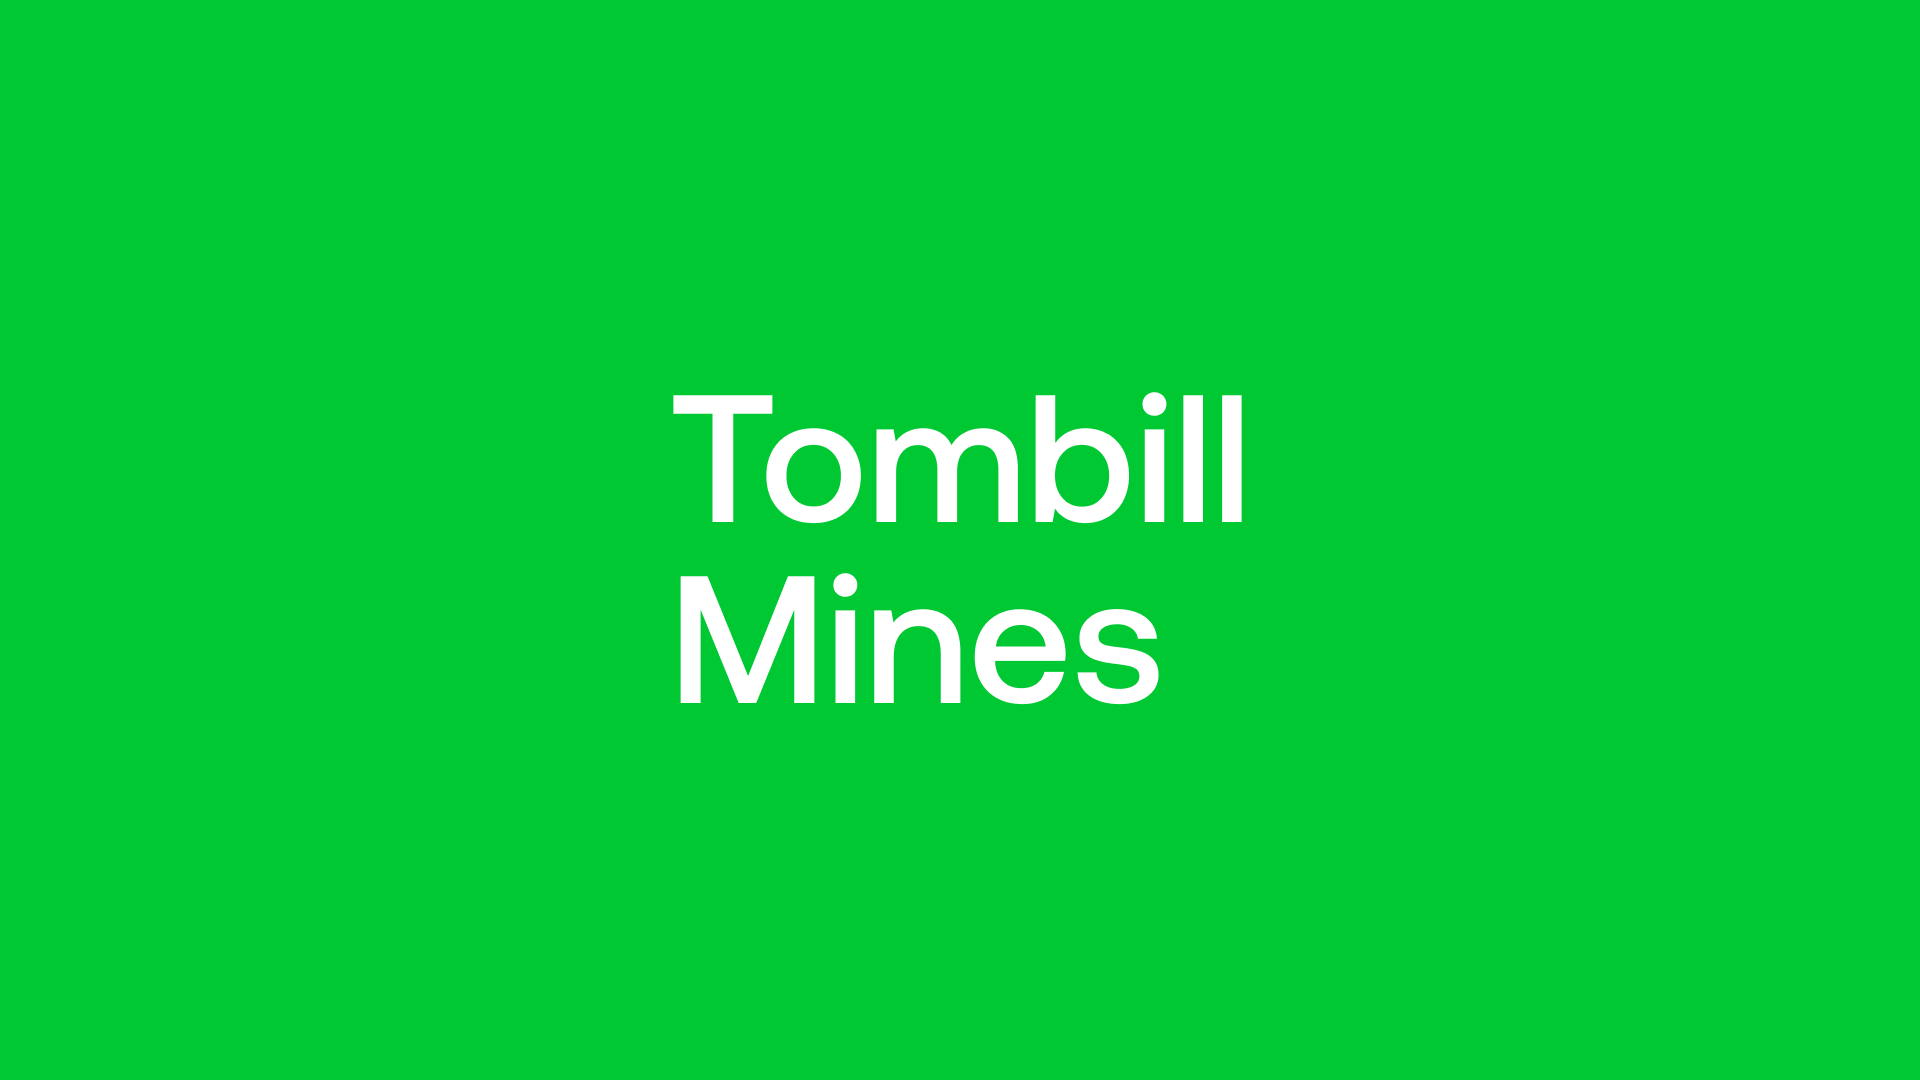 Tombill Mines (TBLL) - Equinox Gold Gathering on the Boarder